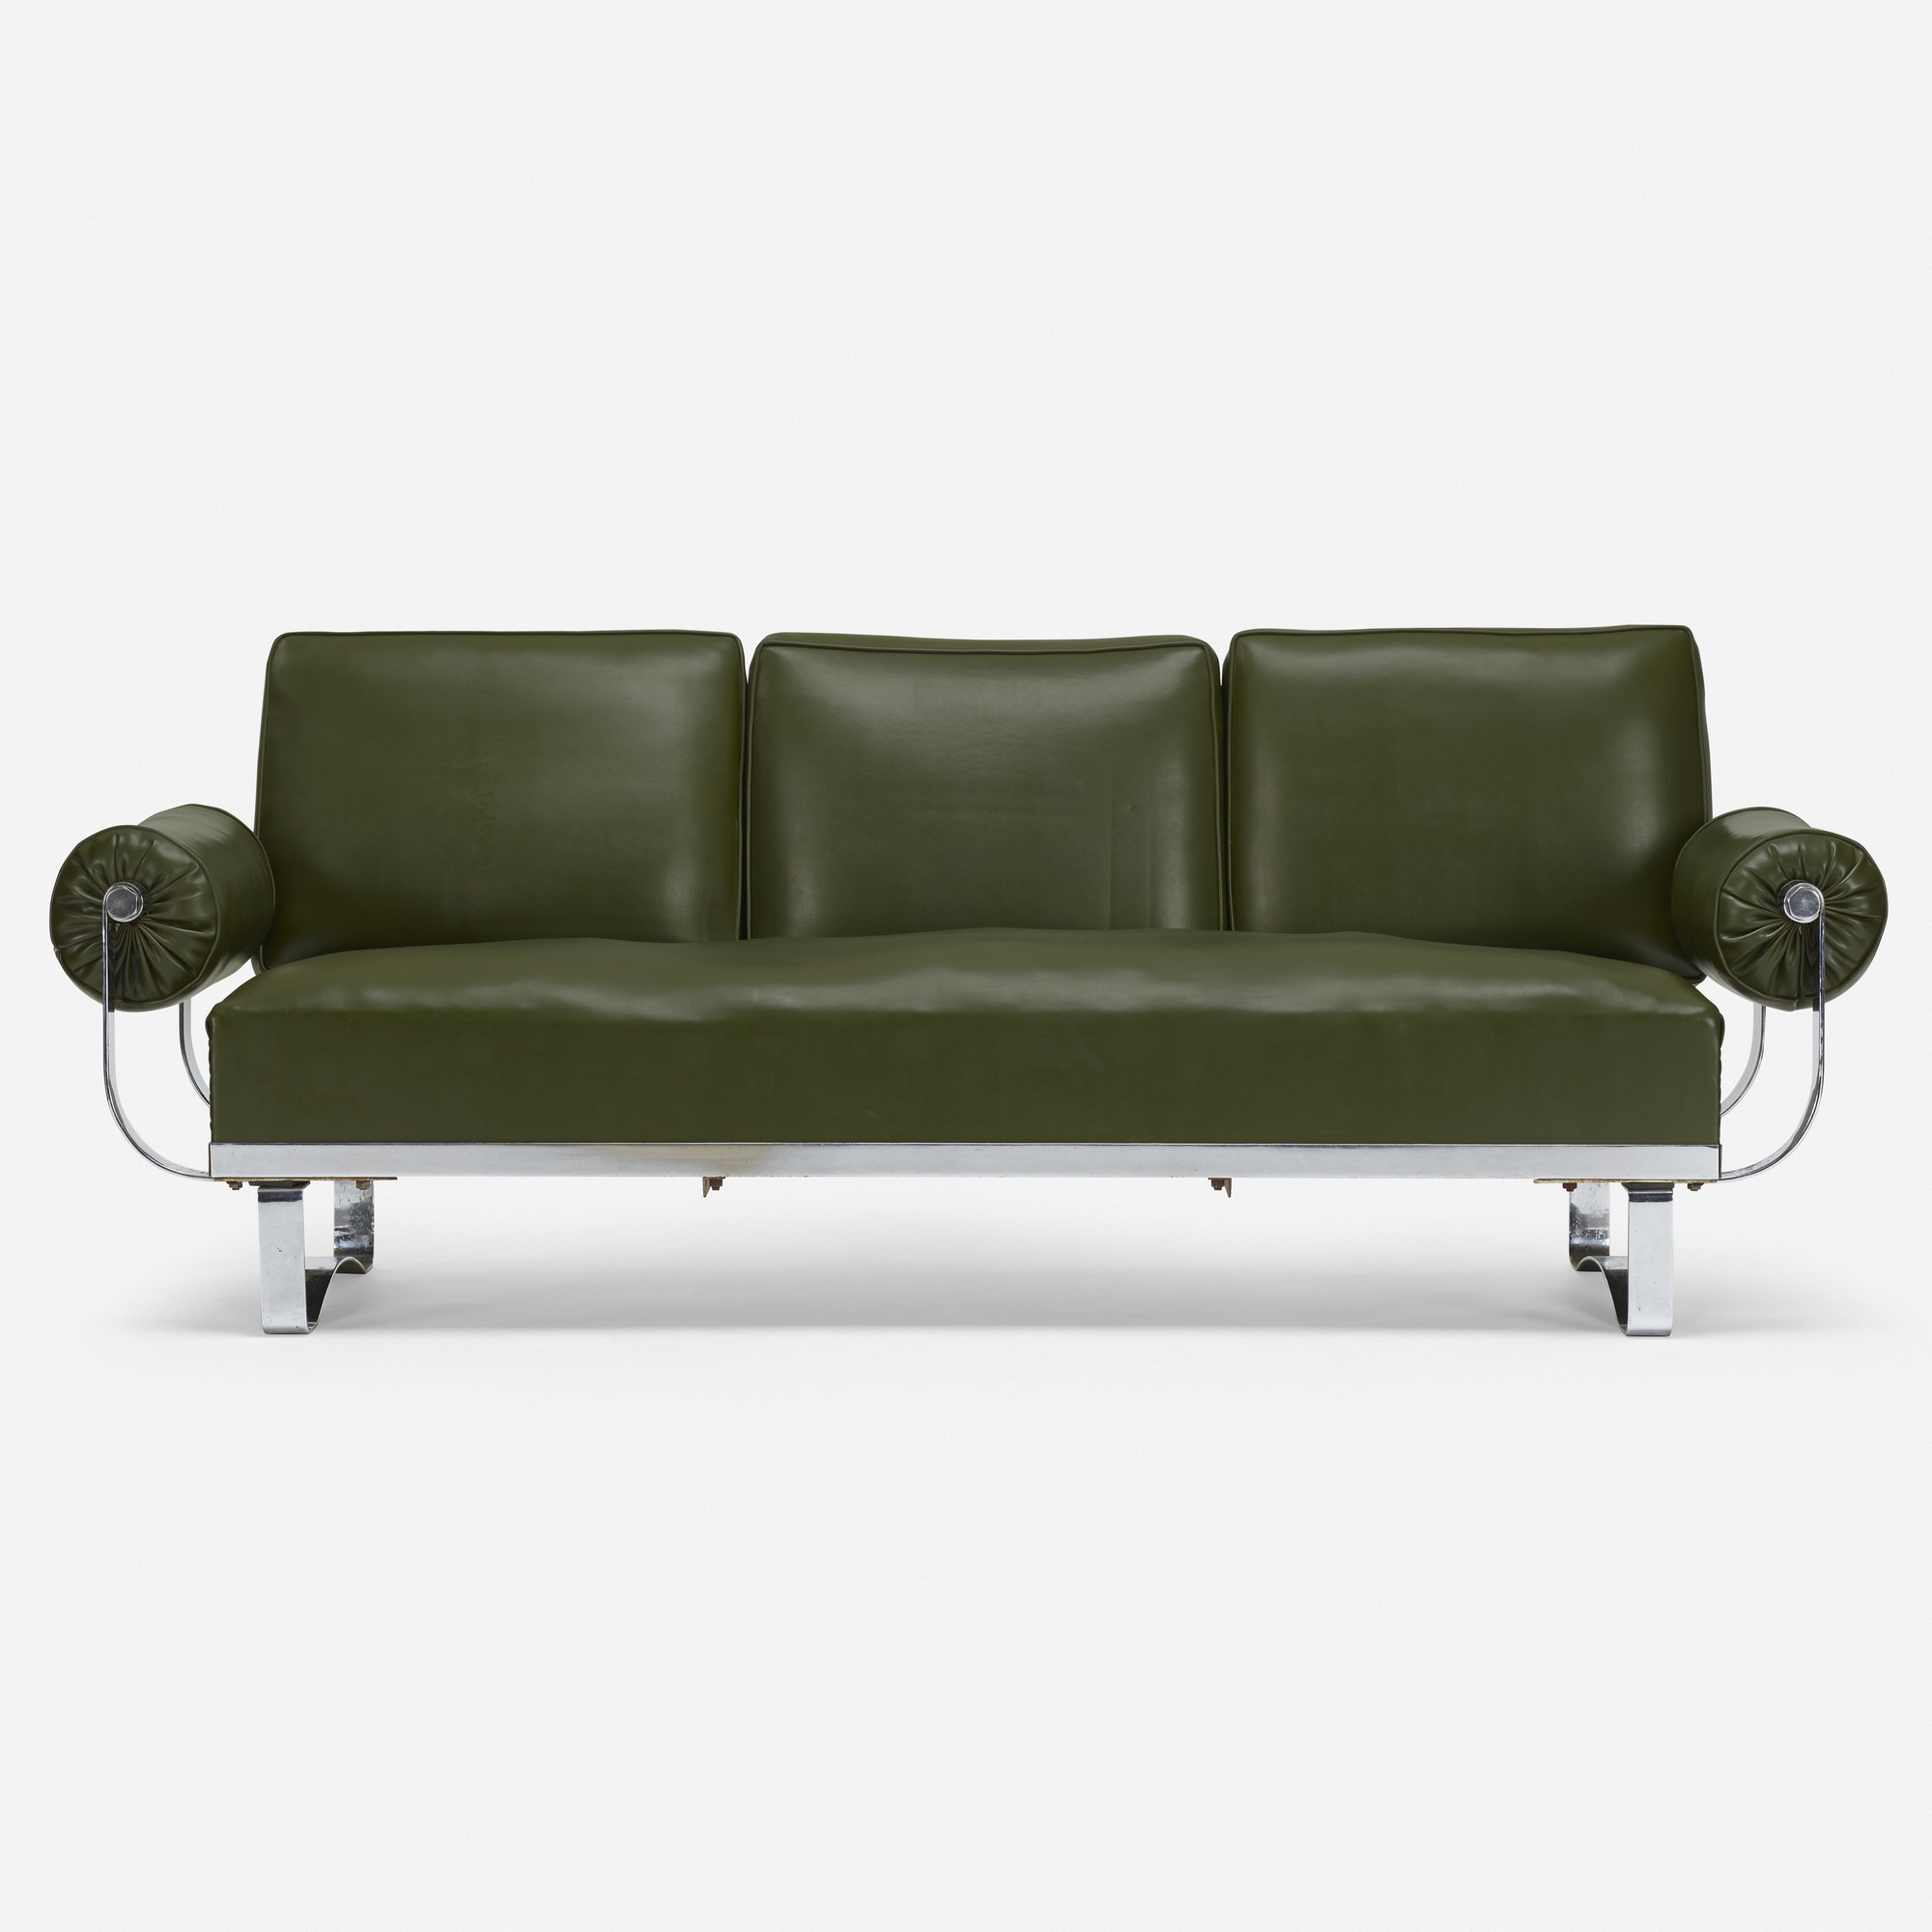 255: MCKAY COMPANY, Rare Sofa < Design, 11 June 2020 < Auctions | Wright: Auctions Of Art And Design